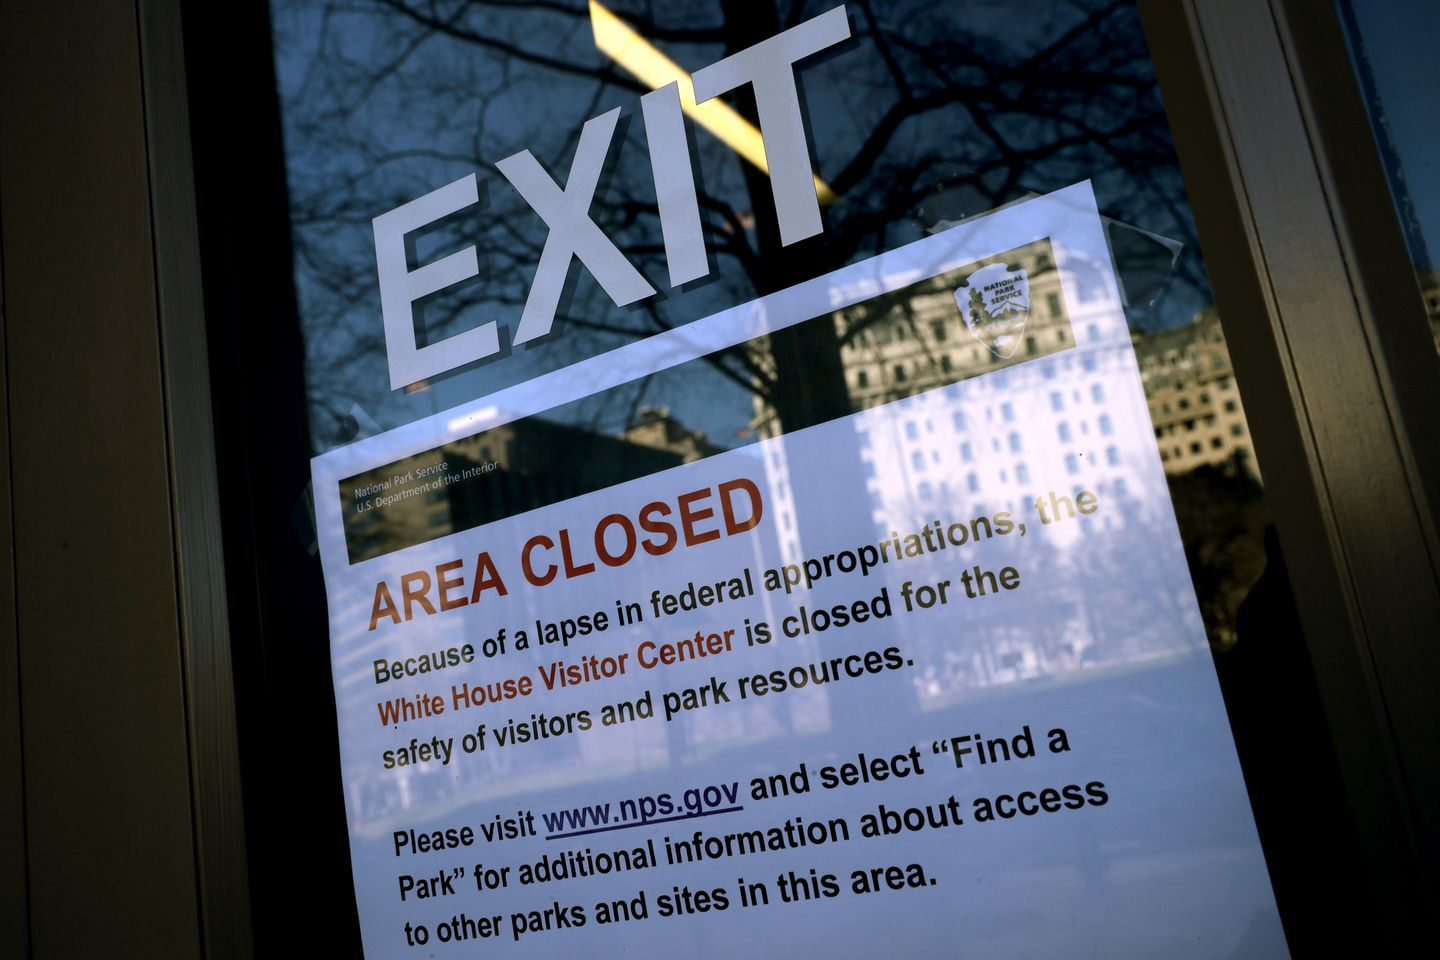 A sign in the window of the White House Visitors Center notified visitors that it is closed due to the partial federal government shutdown.